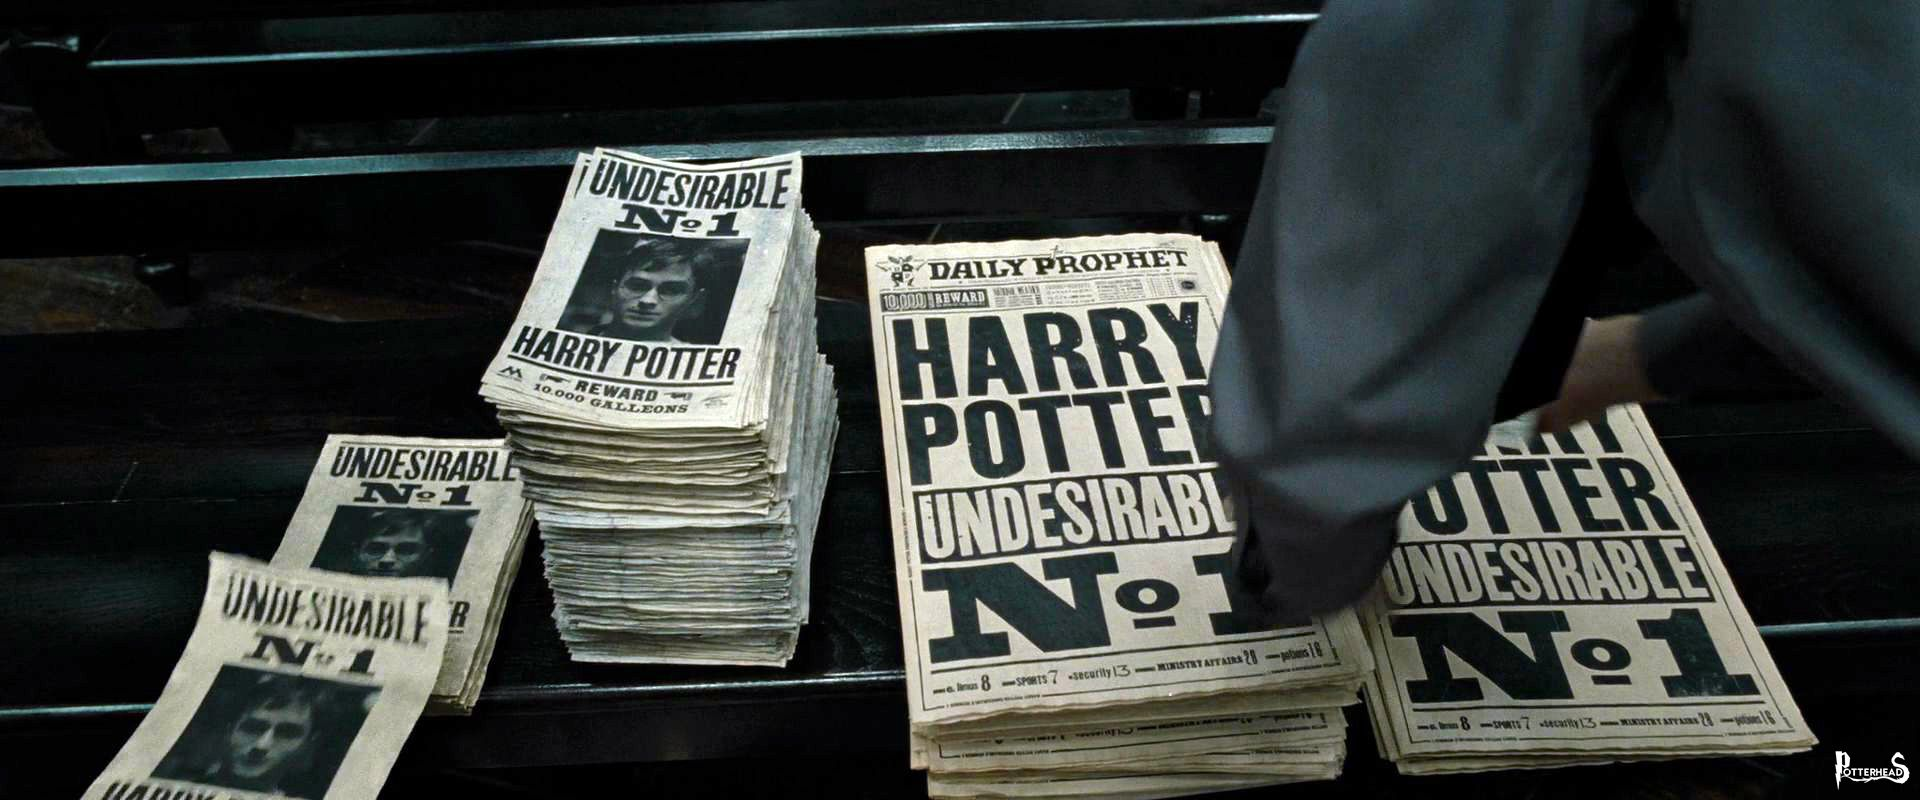 Squadra Speciale Magica Harry Potter - PotterPedia.it